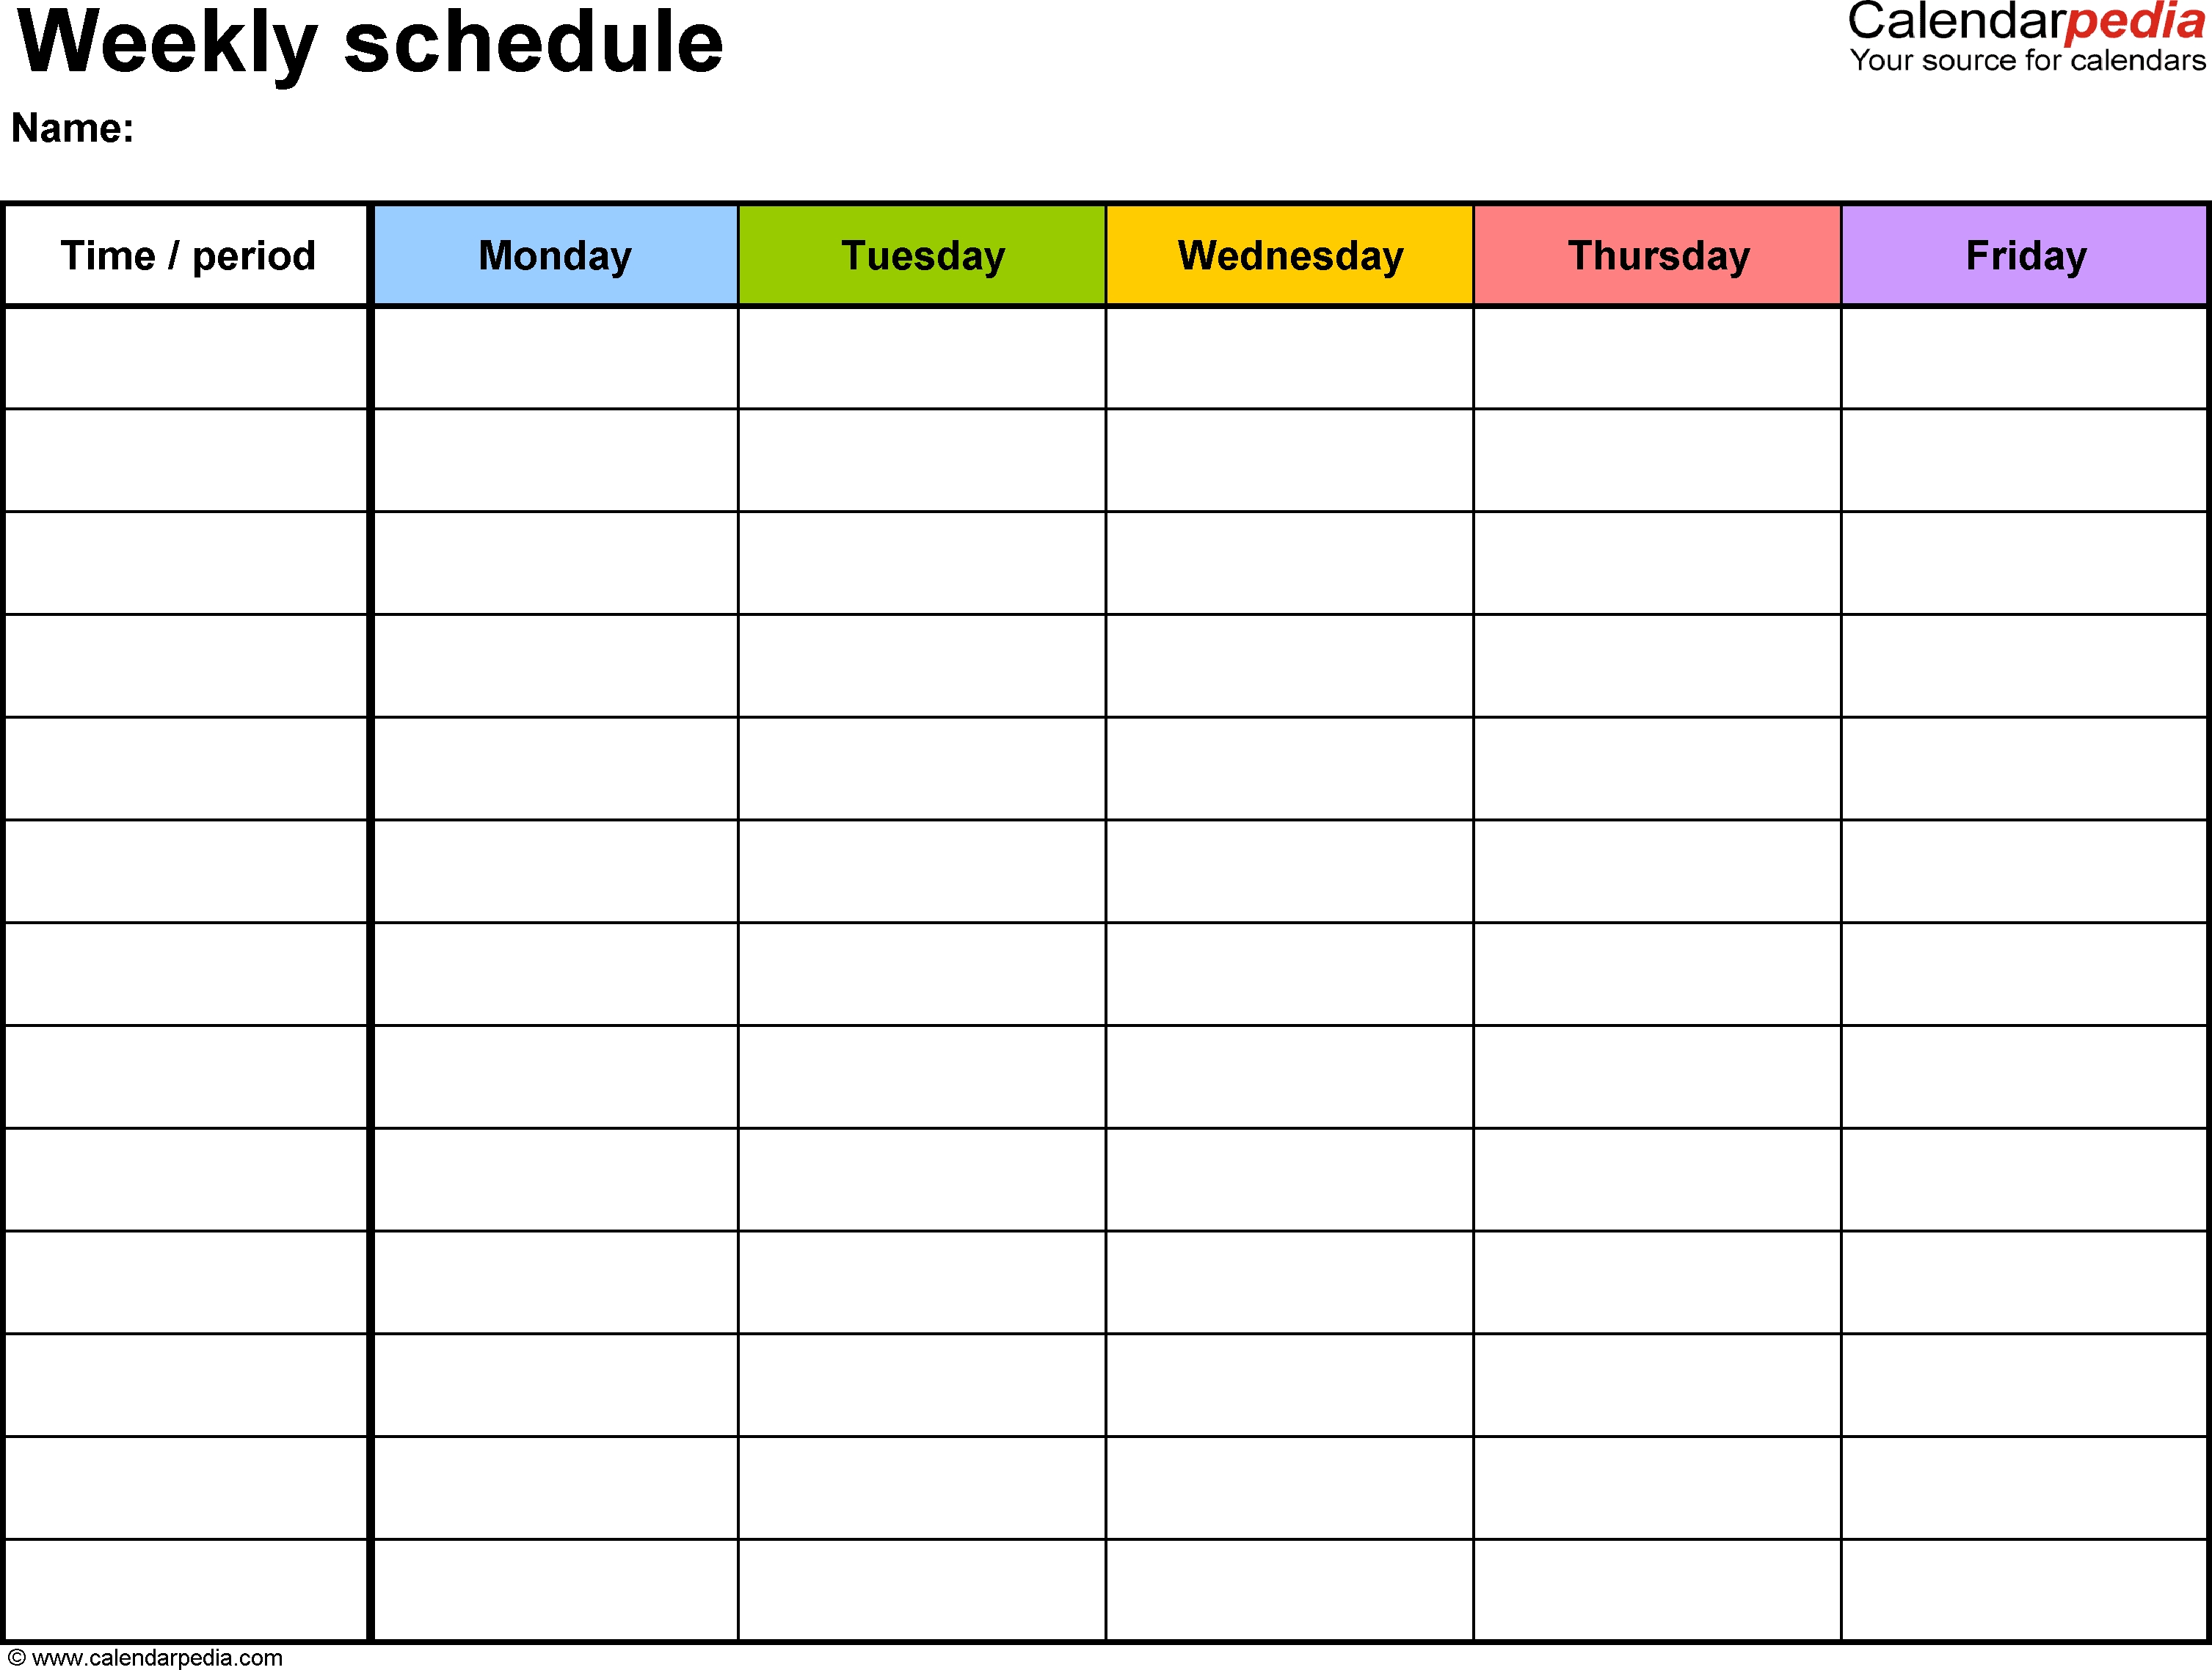 Free Weekly Schedule Templates For Word - 18 Templates inside Week Template Monday Through Friday